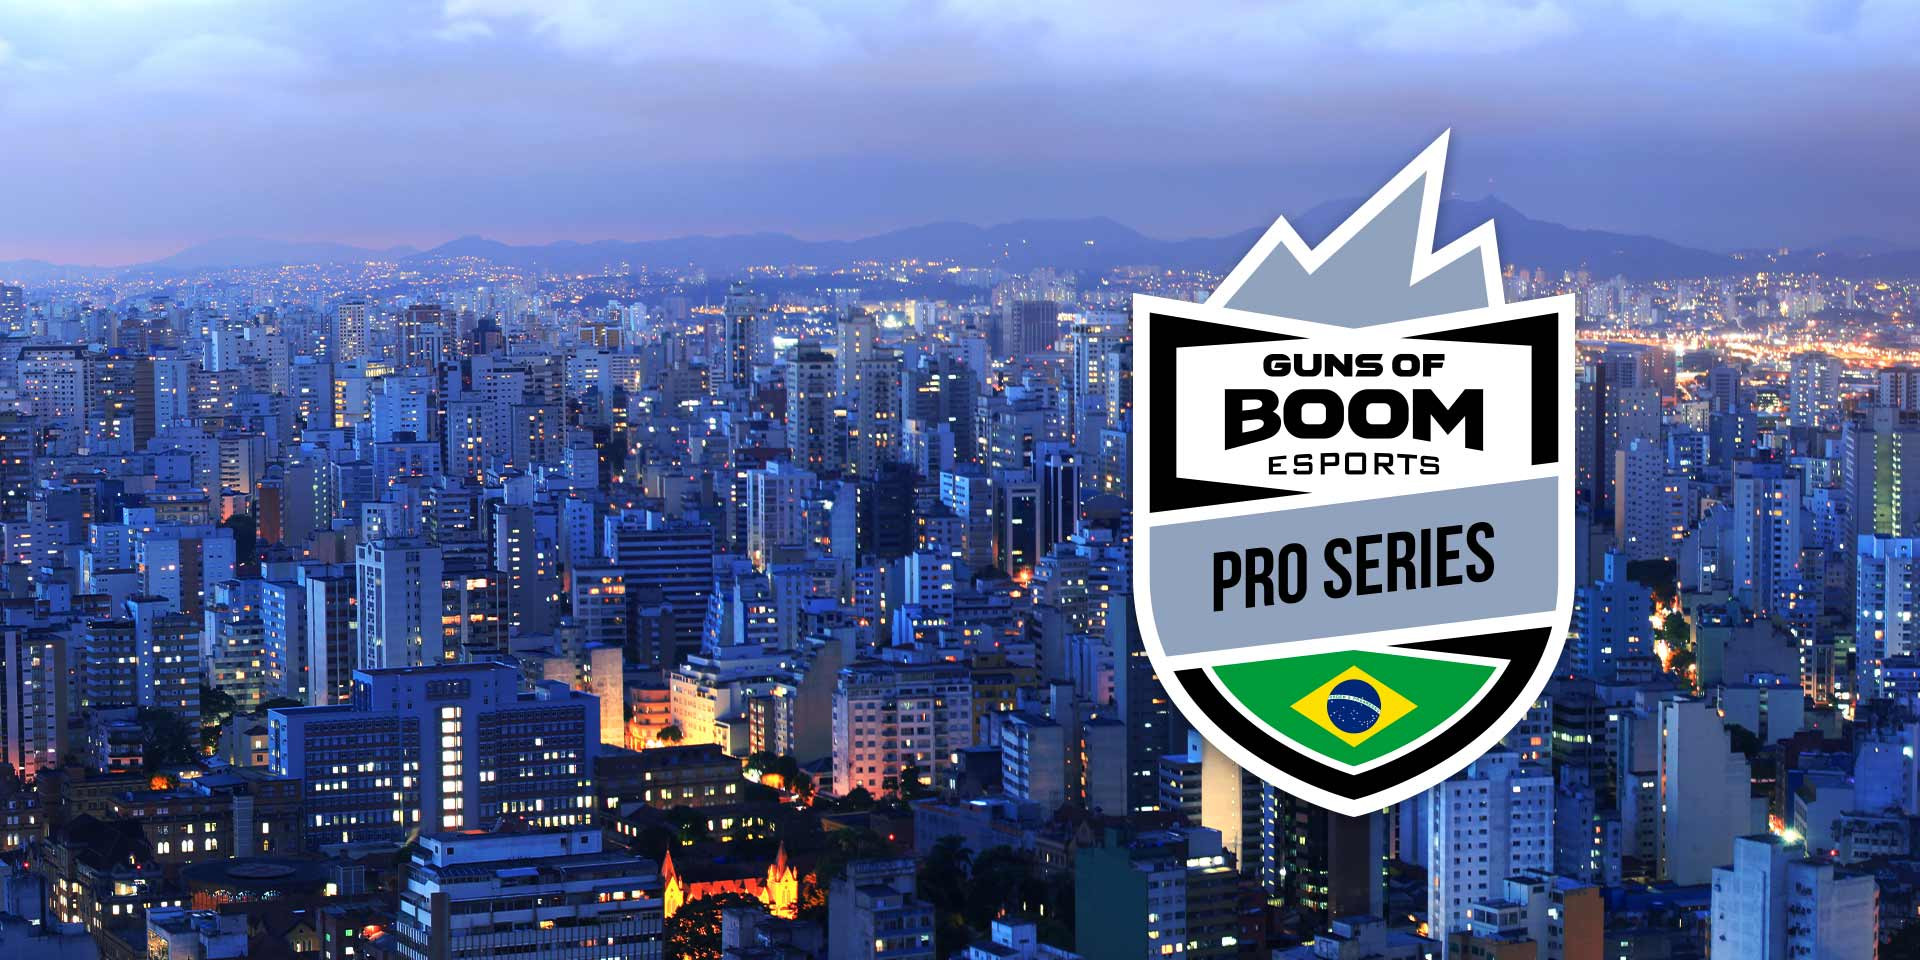 all-you-need-to-know-about-pro-series-brazil-FImfqJu3In